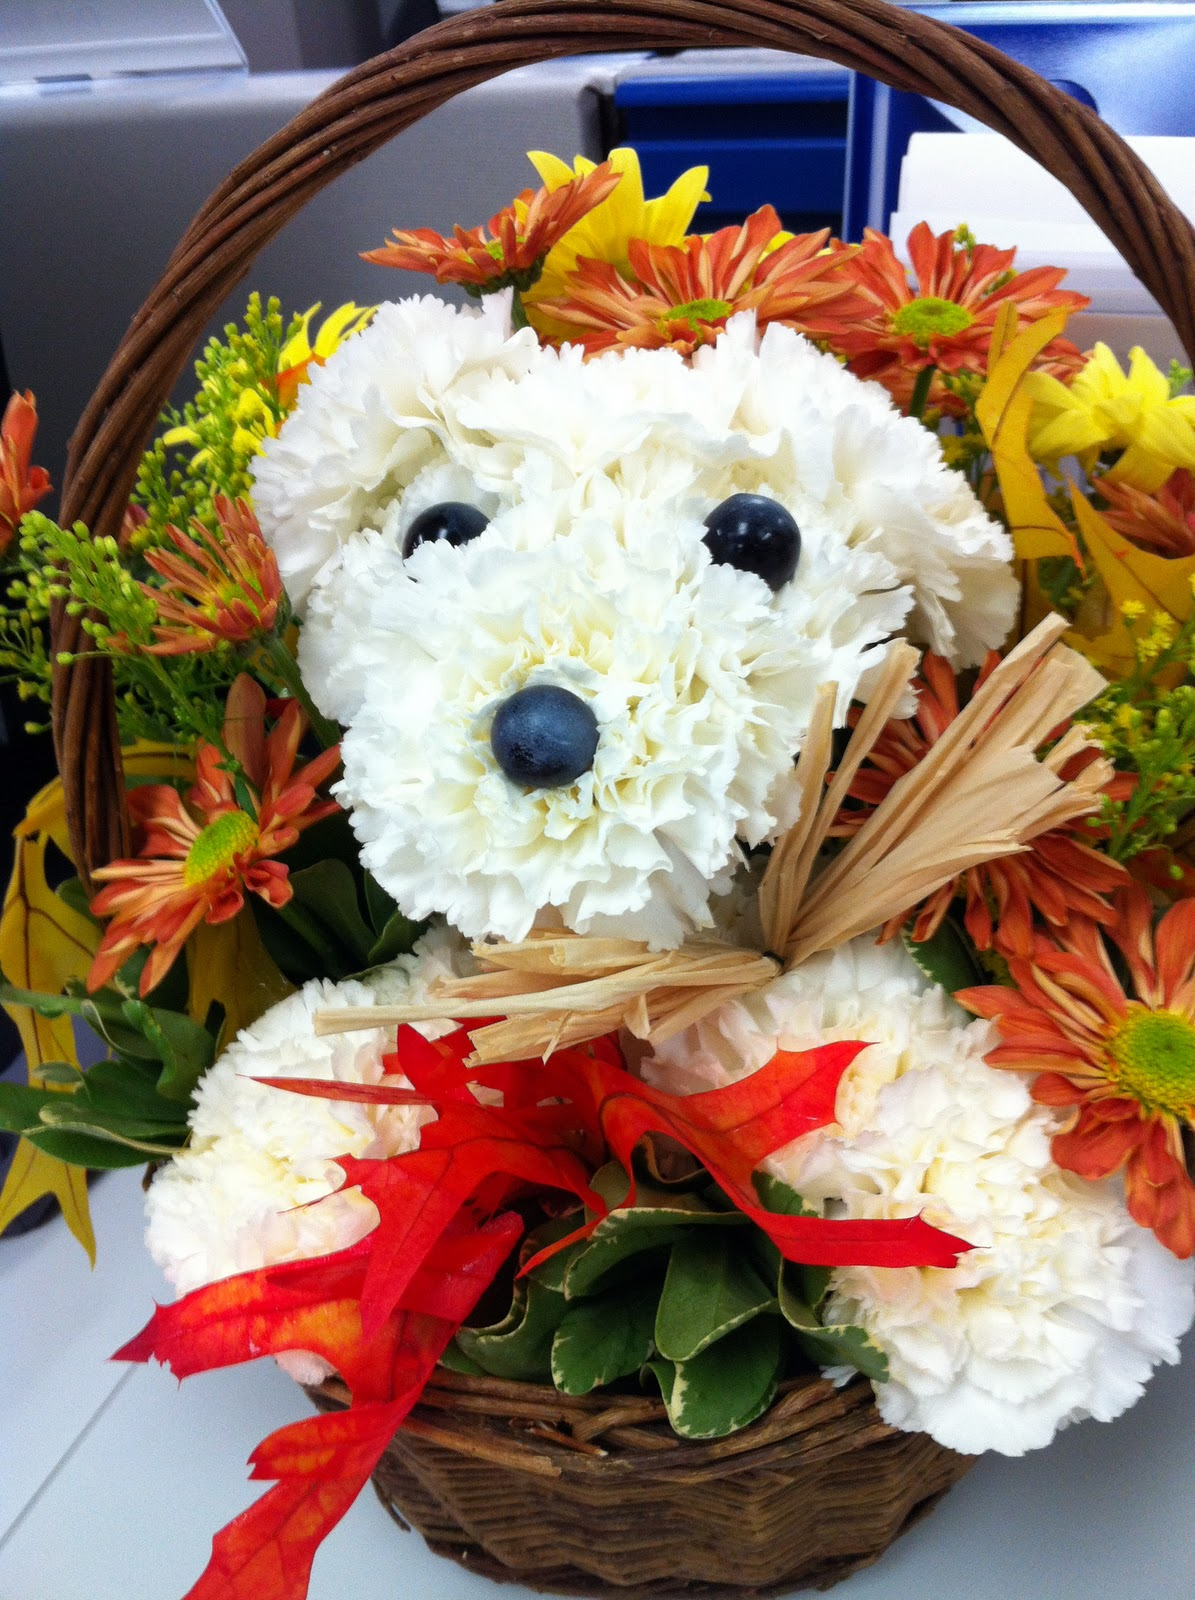 Generous 1800 flowers dog bouquet contemporary wedding and flowers cute 1800 flowers dog bouquet photos wedding and flowers izmirmasajfo Gallery